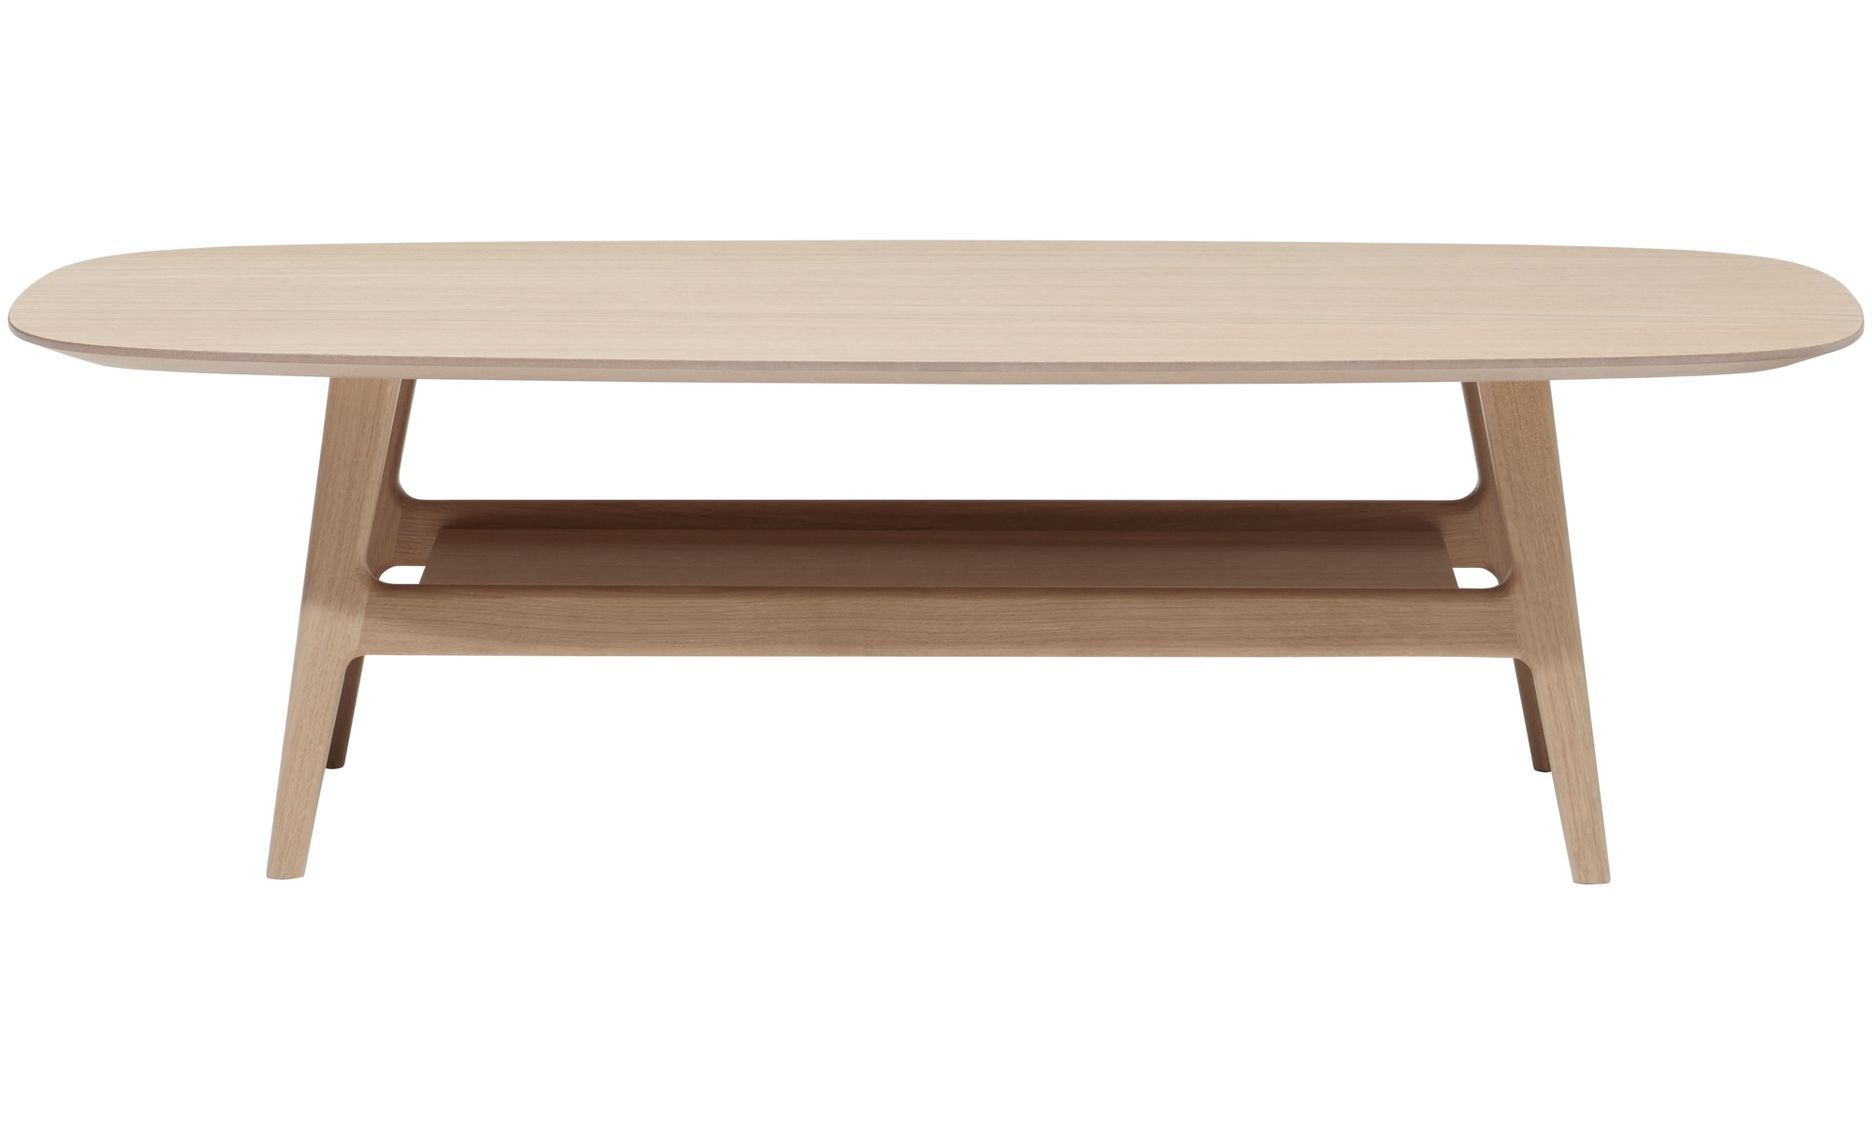 Coffee Tables Adelaide Coffee Table Oval Brown Oak Coffee Table Coffee Table Design Oval Coffee Tables